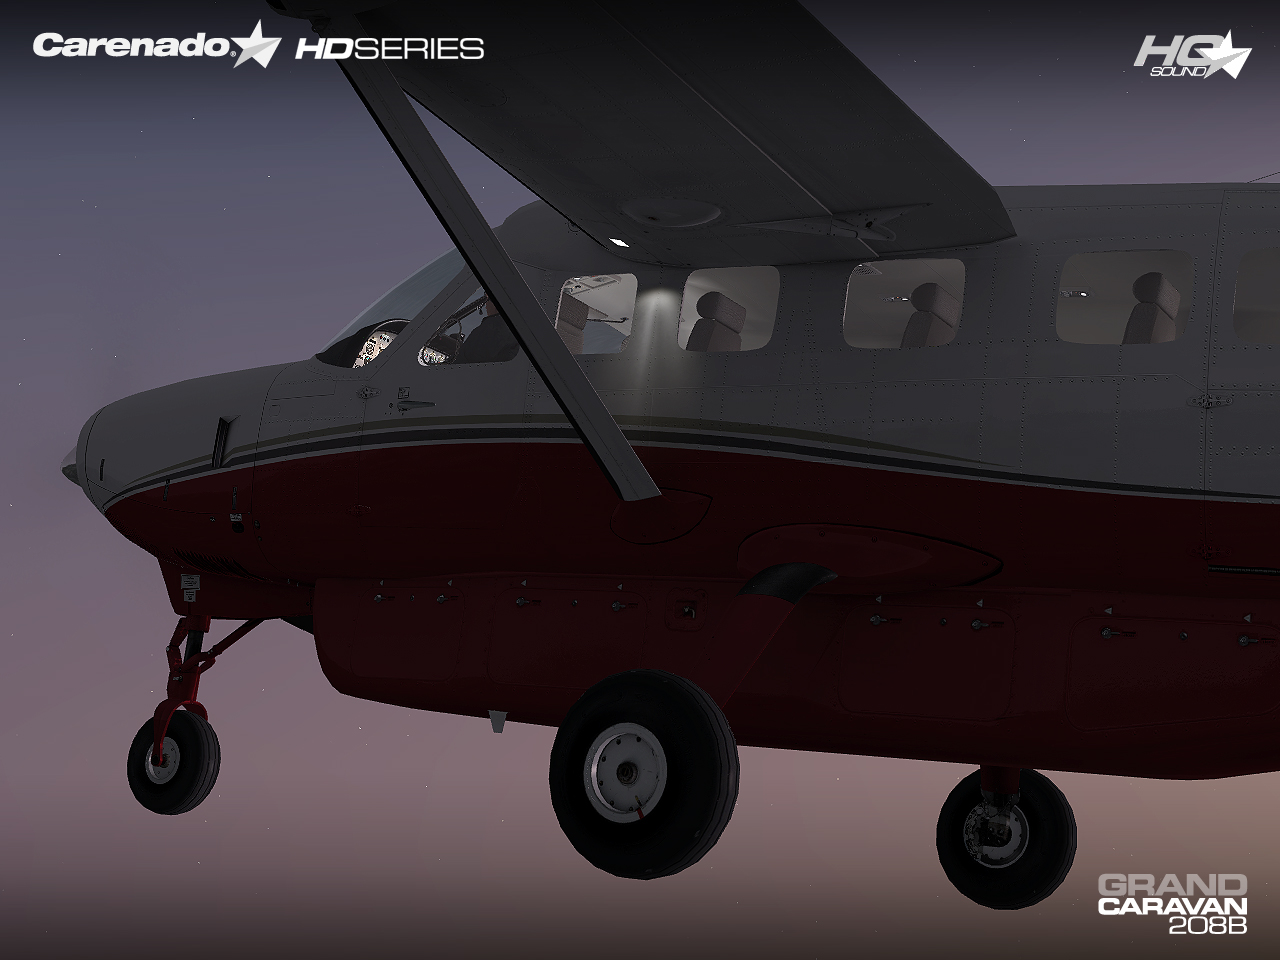 CARENADO - C208B GRAND CARAVAN FSX P3D HD SERIES